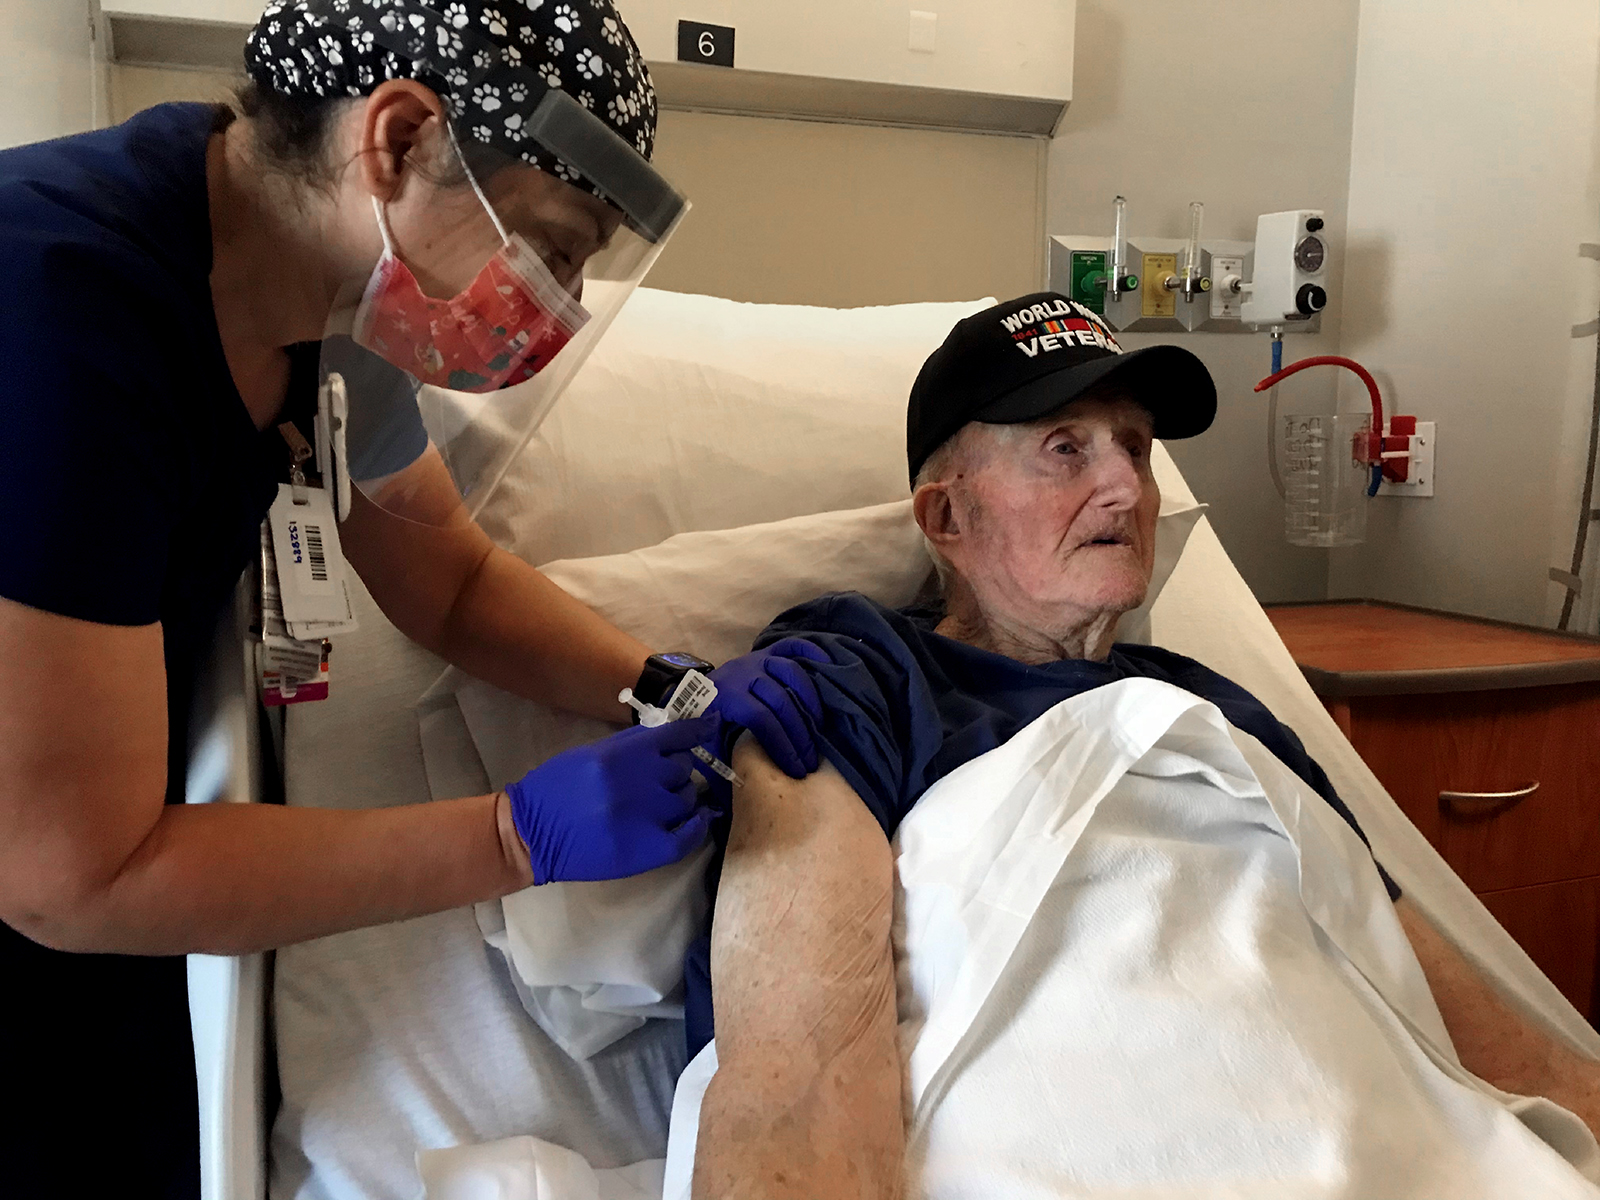 World War II veteran John Mohun, 94, receives the Pfizer-BioNTech Covid-19 vaccine at the Veterans Affairs agency in Phoenix on Tuesday, Dec. 16, 2020.